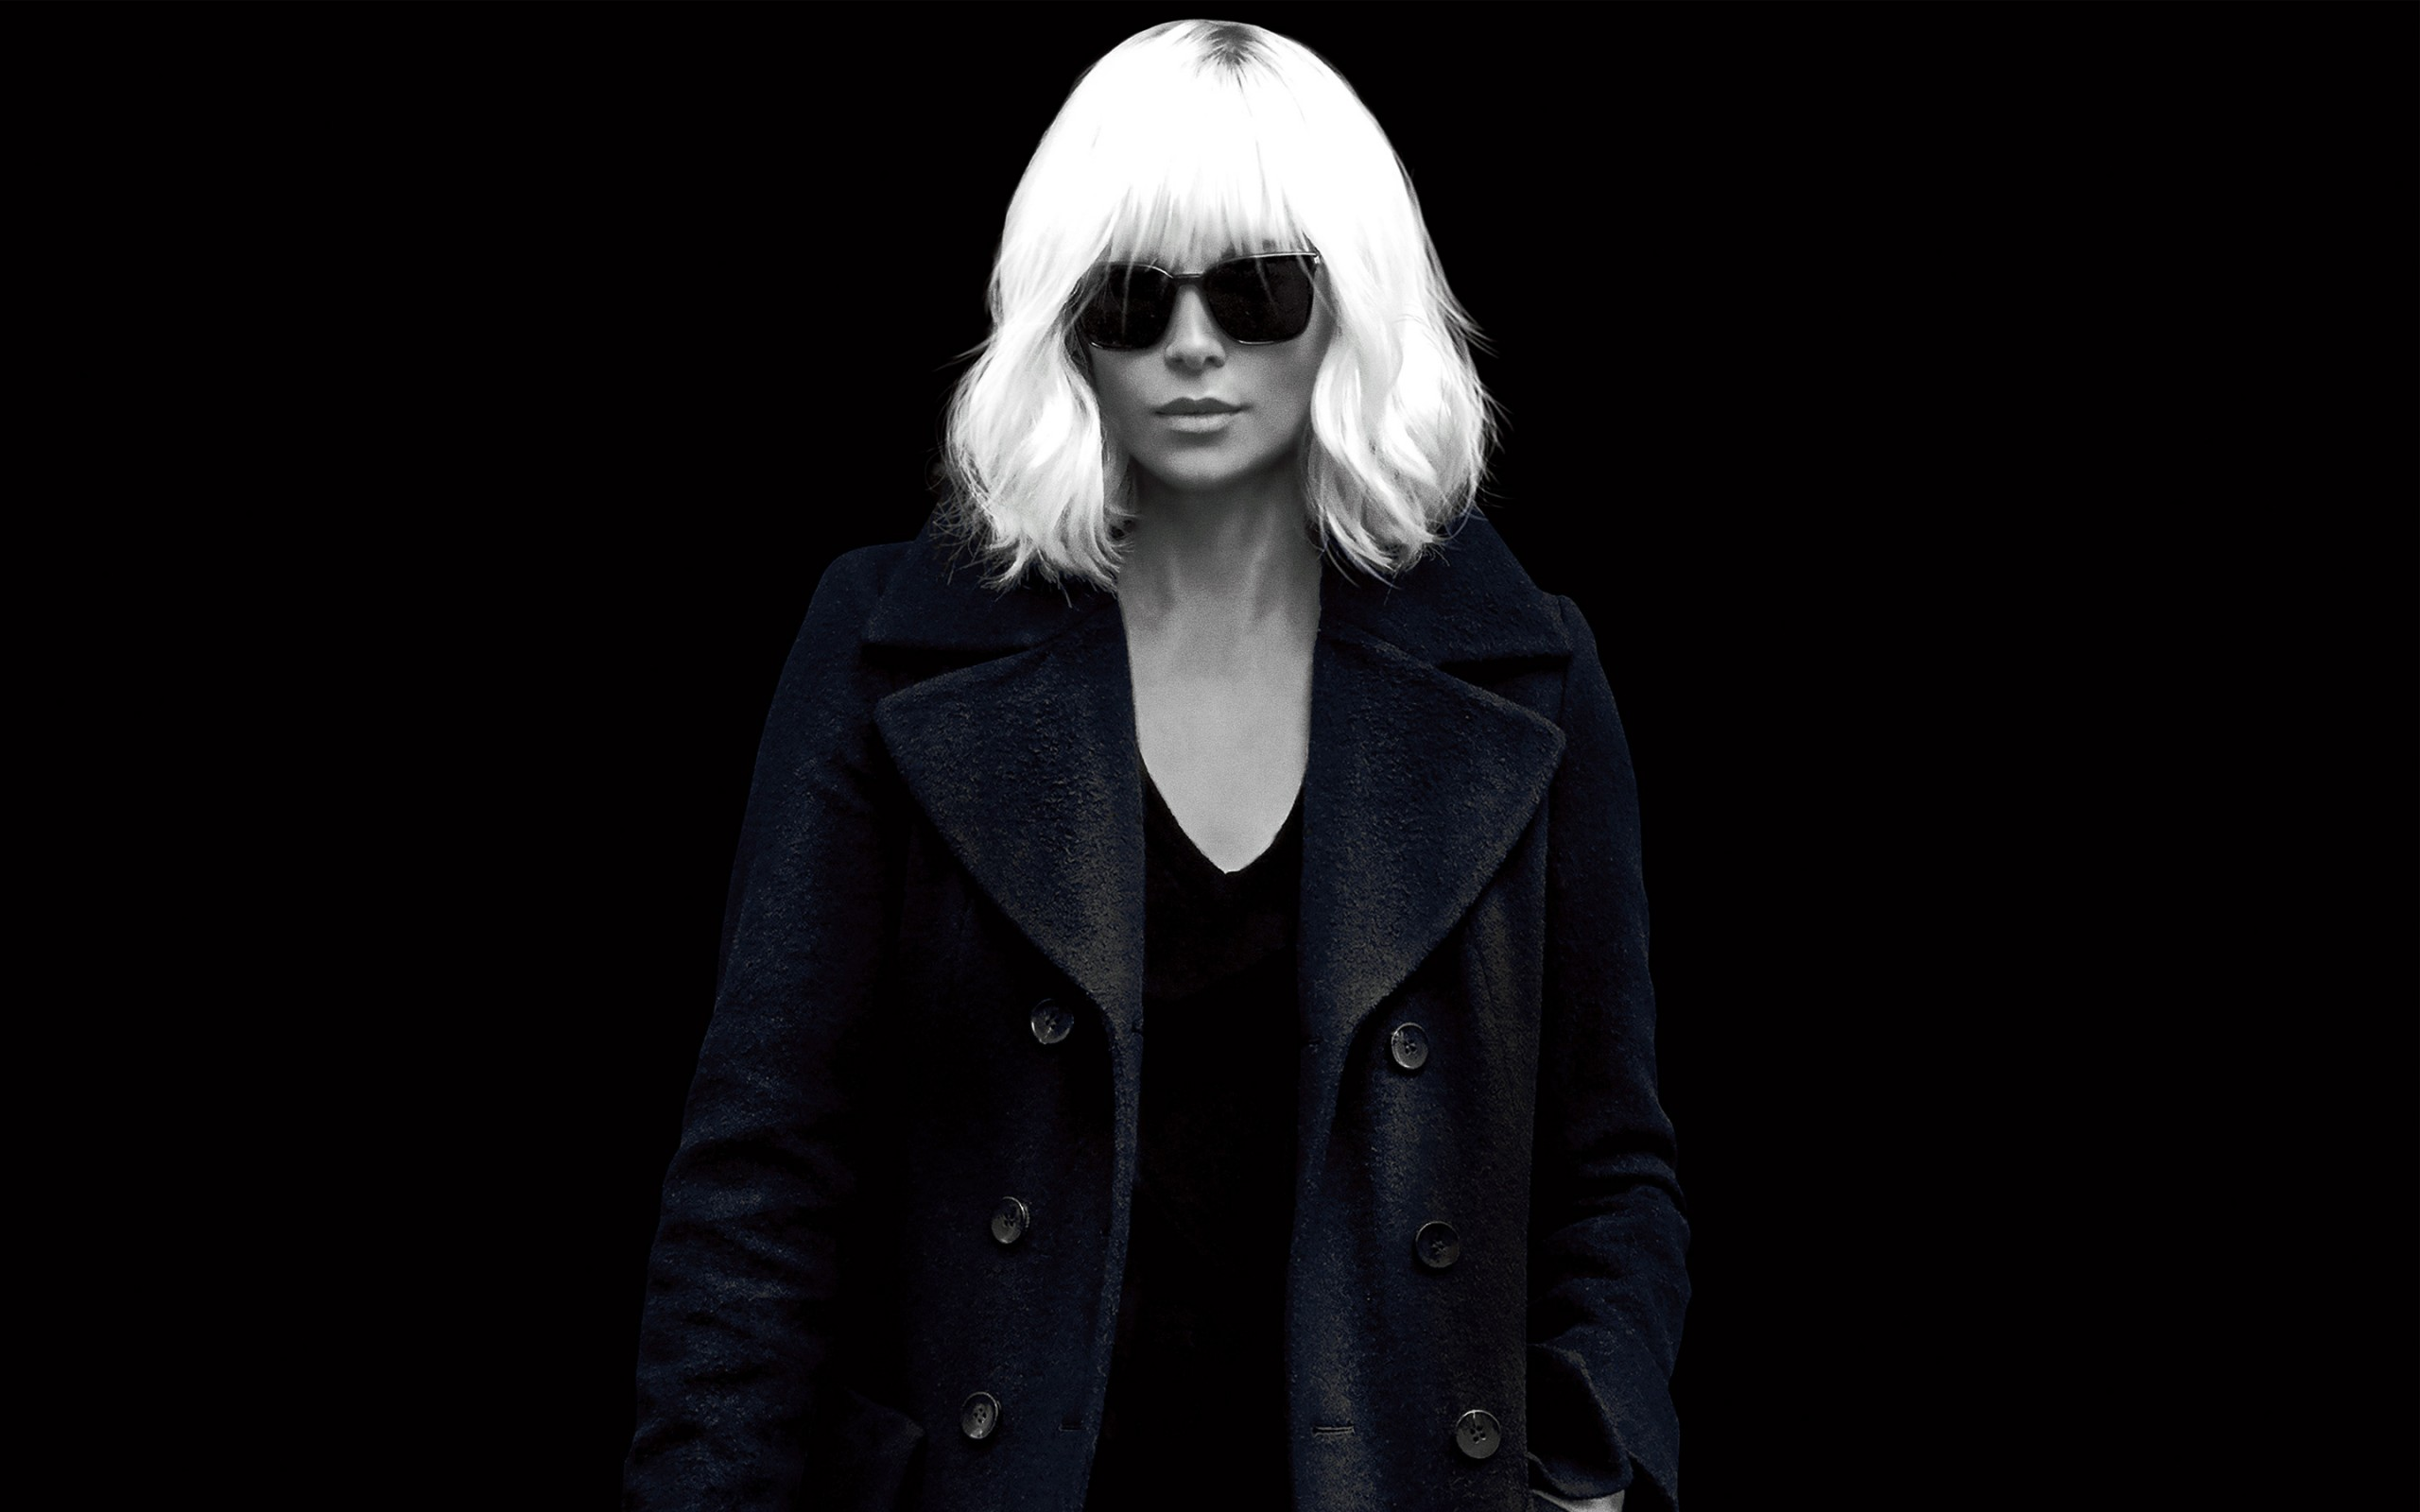 Full Hd Wallpapers  High Resolution Iphone 6s Charlize Theron Atomic Blonde Wallpapers Hd Wallpapers